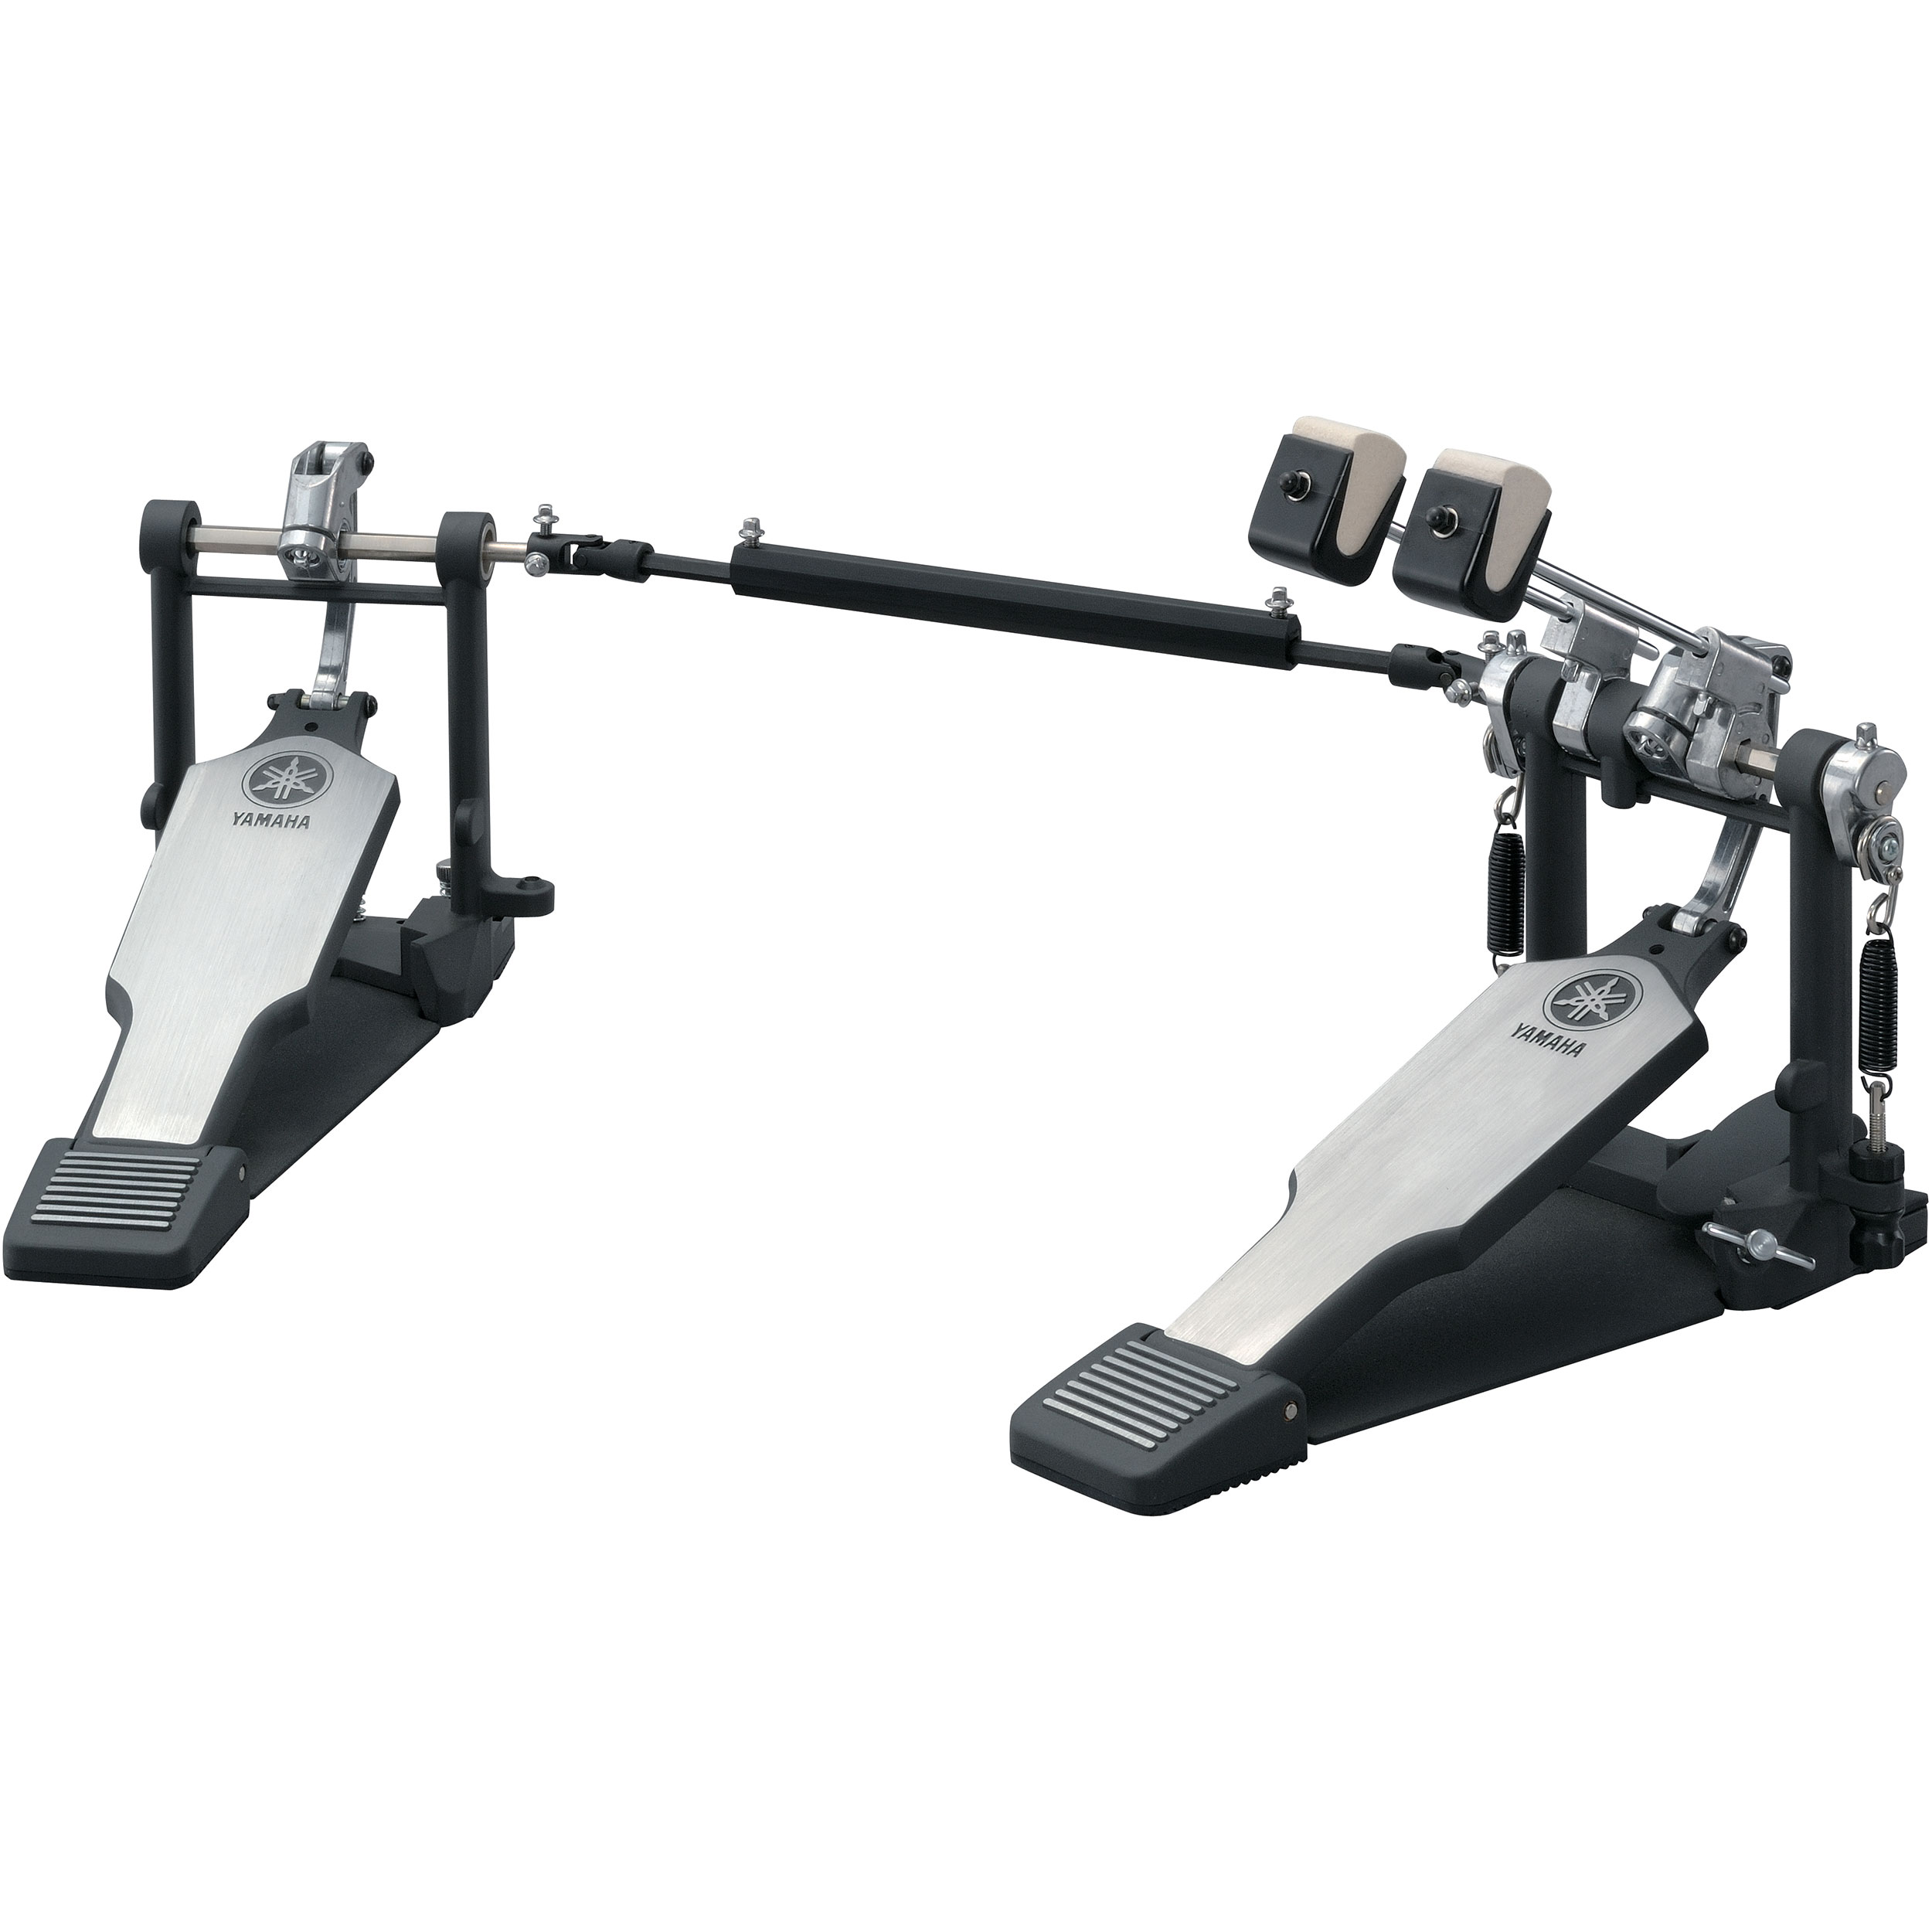 Yamaha Double Bass Pedal with Direct Drive Chain